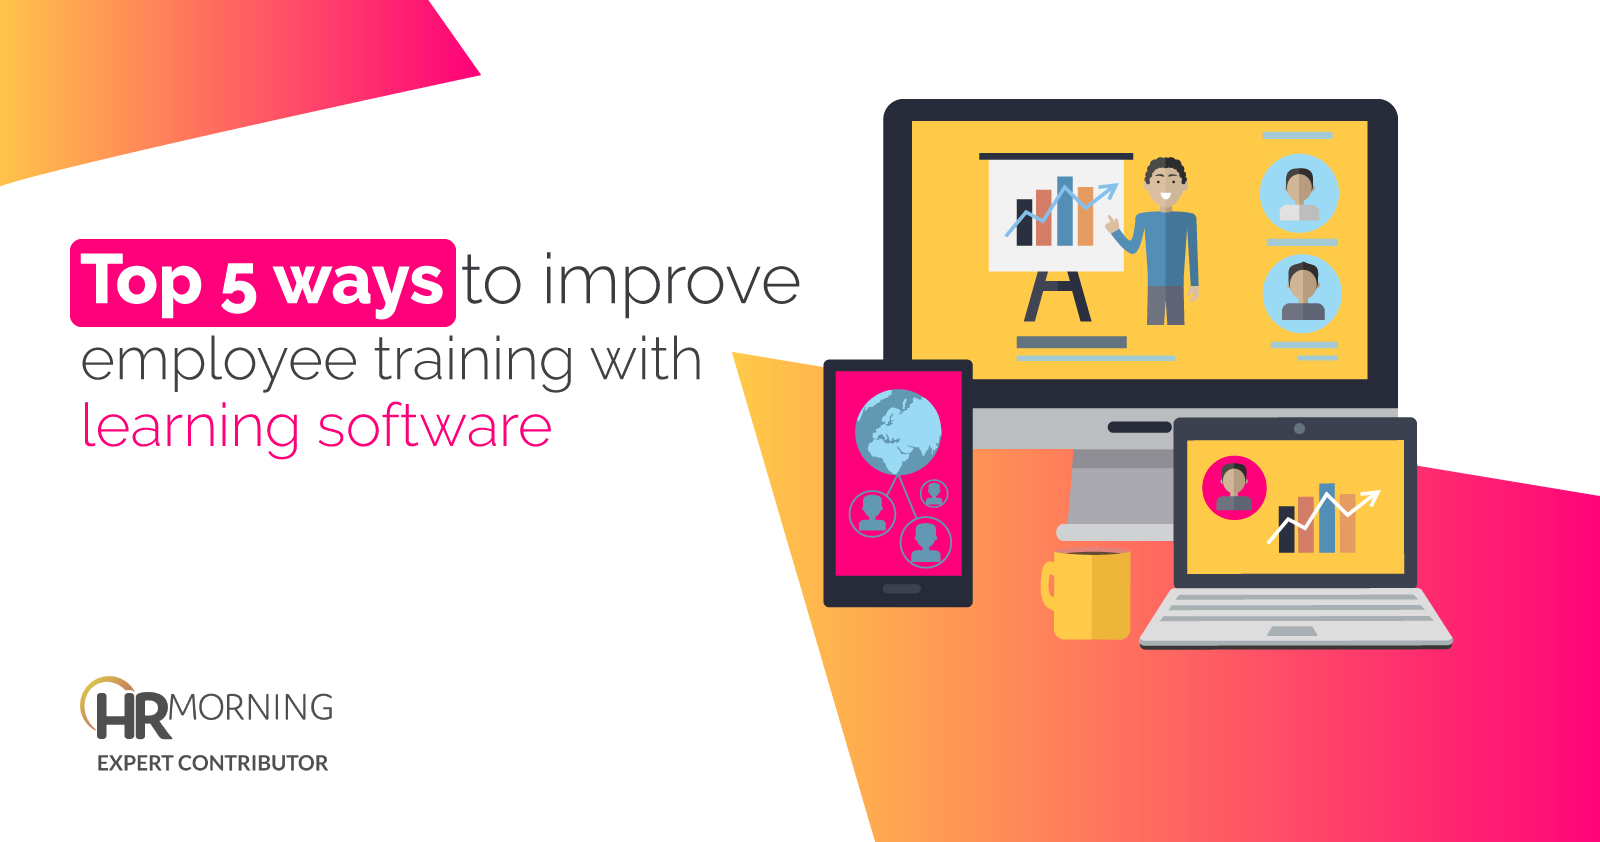 Top 5 ways to improve employee training with learning software